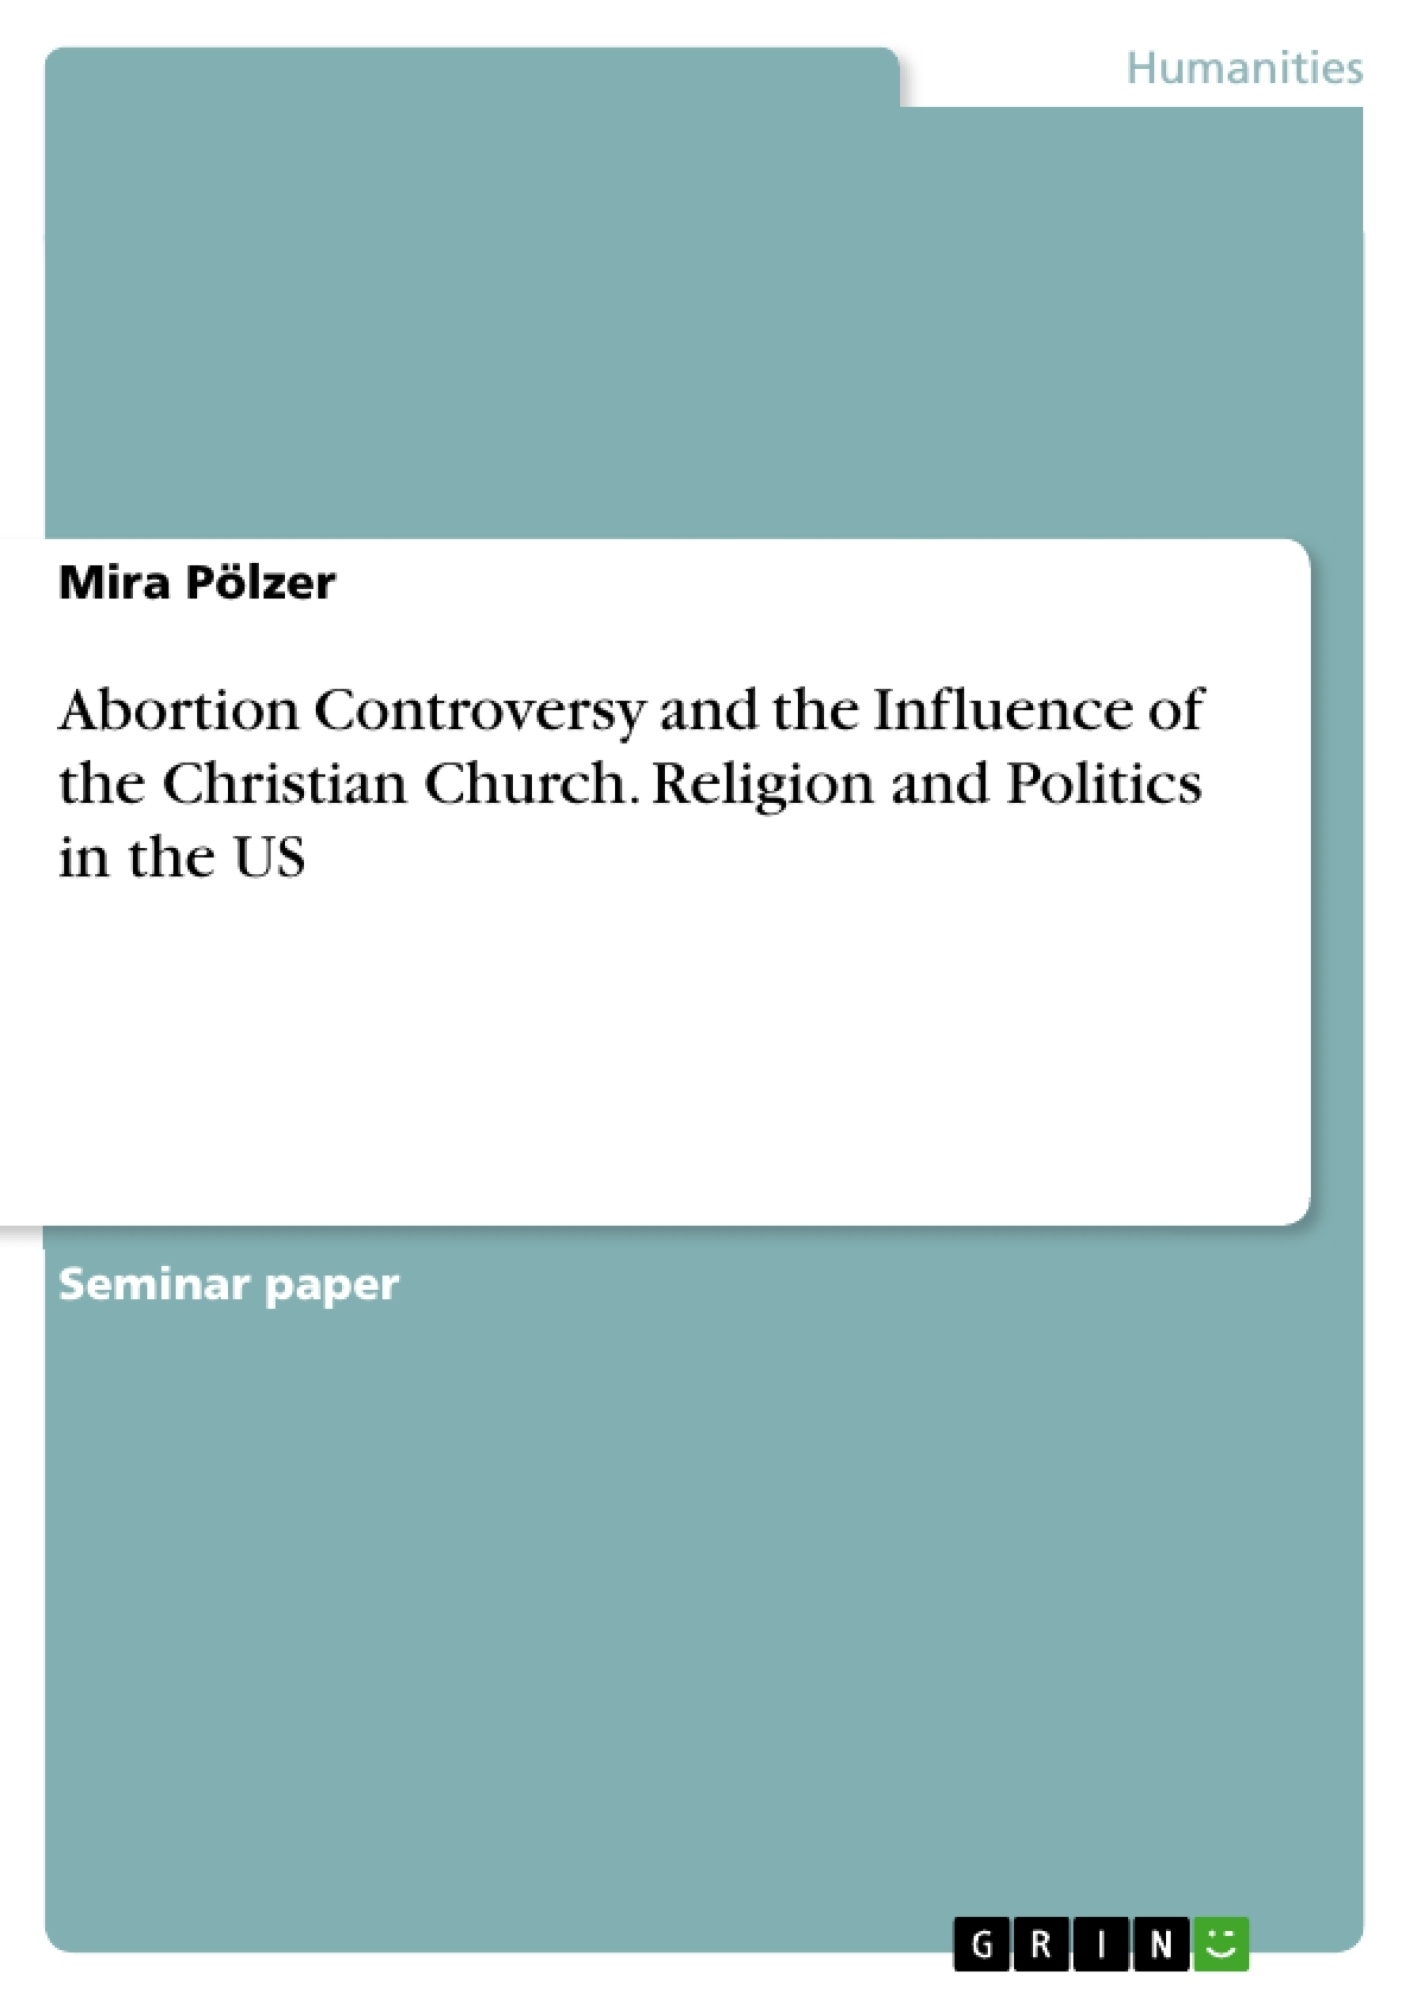 Title: Abortion Controversy and the Influence of the Christian Church. Religion and Politics in the US